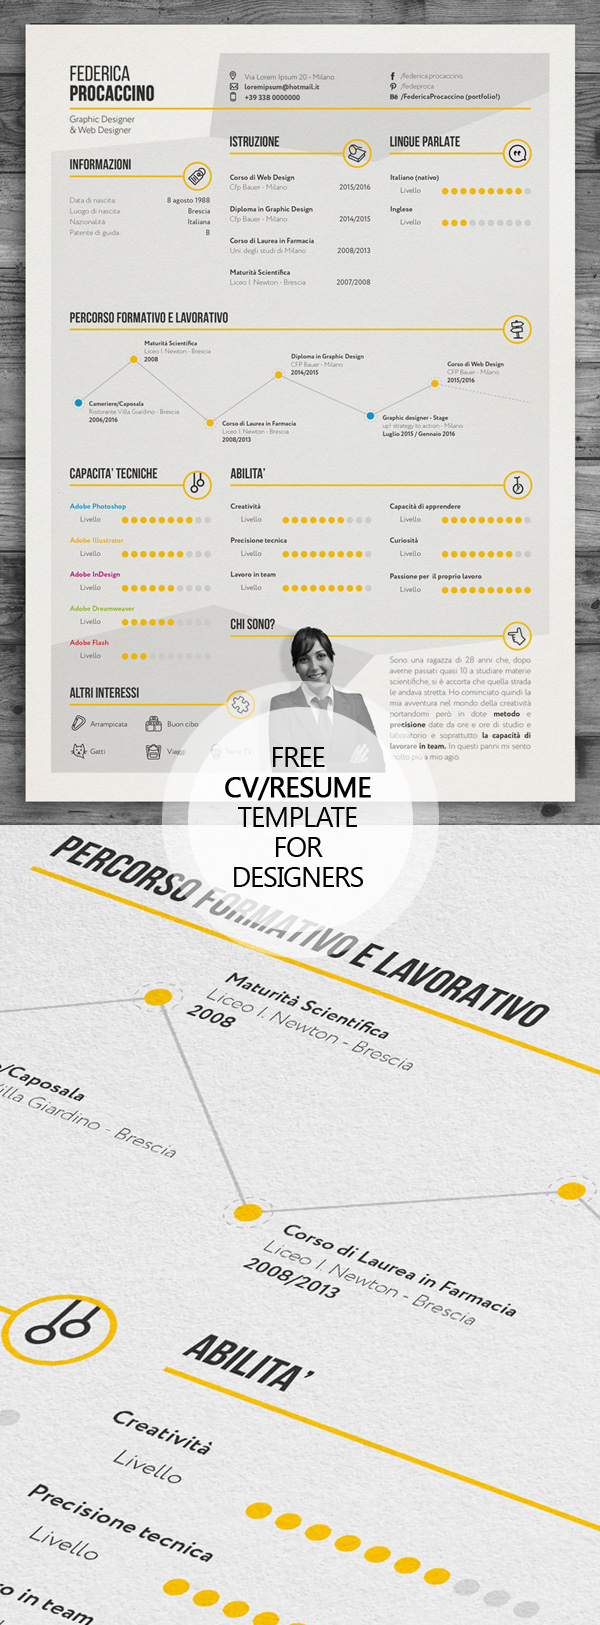 free creative freelancer designer resume template psd - Resume Templates For Graphic Designers